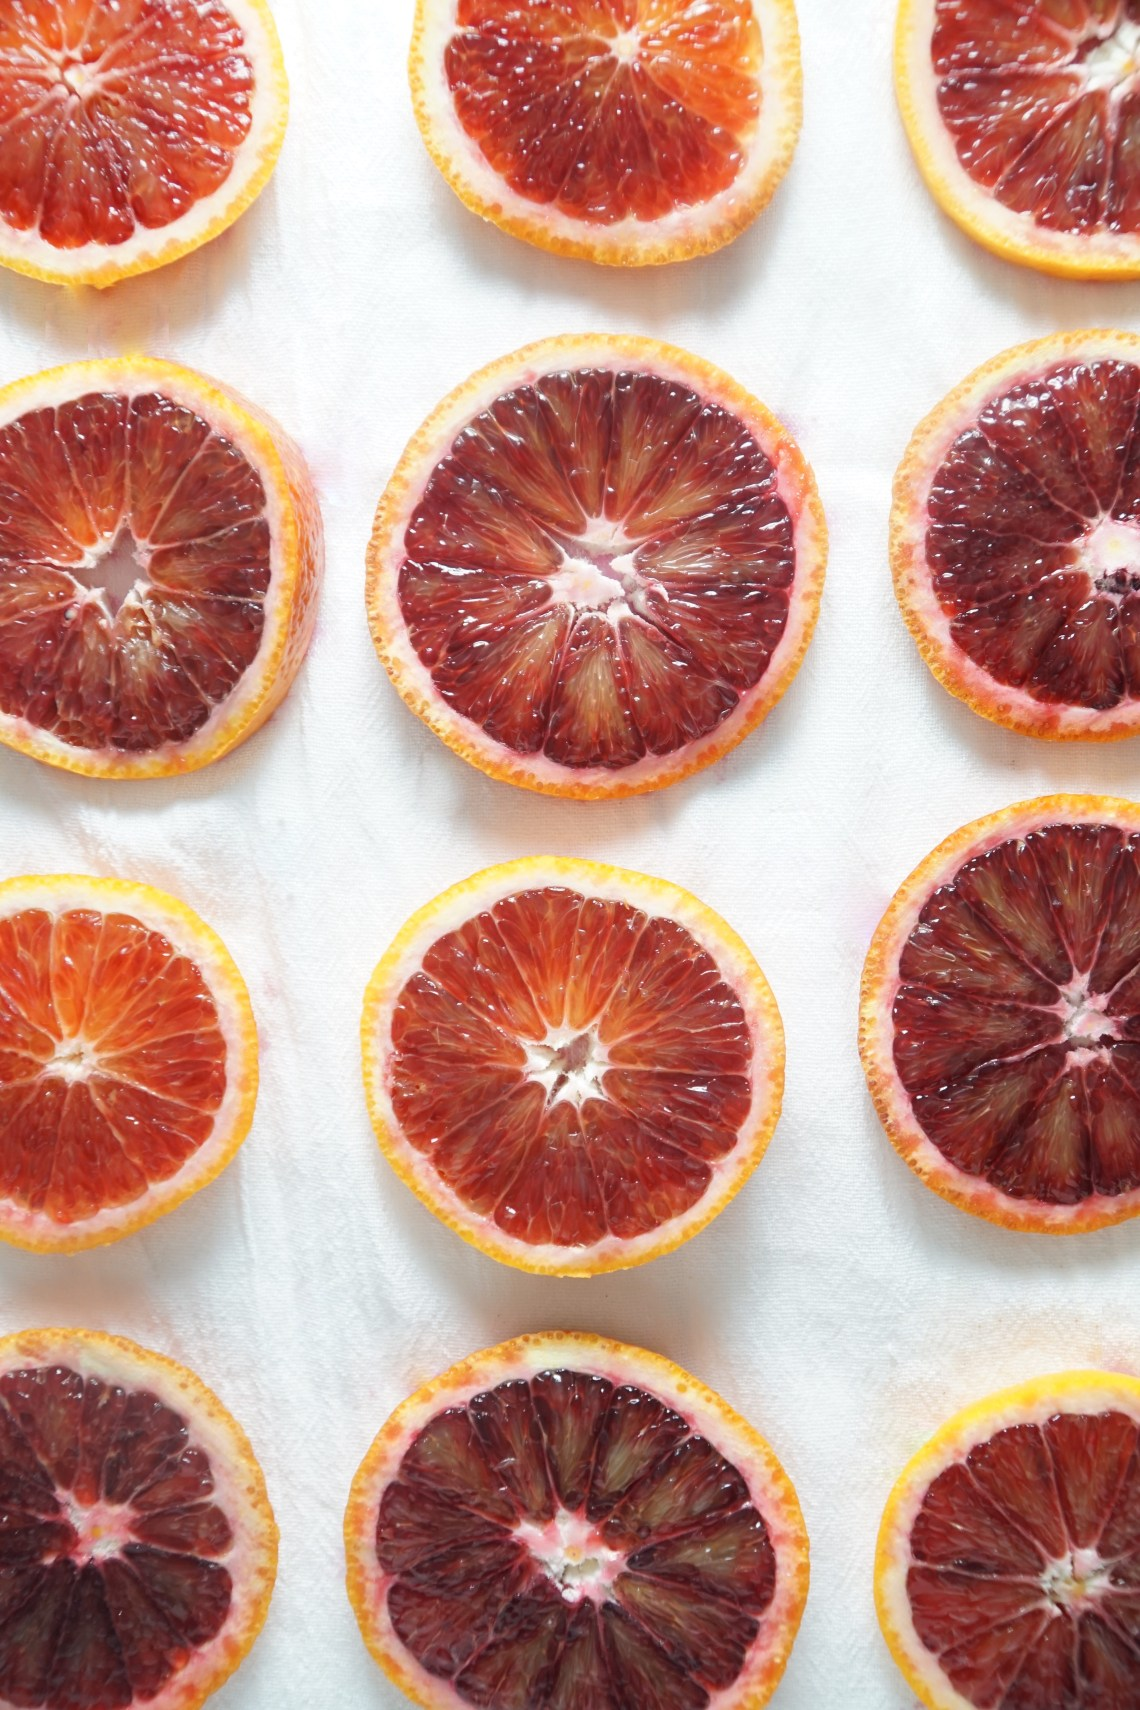 Slices of blood oranges